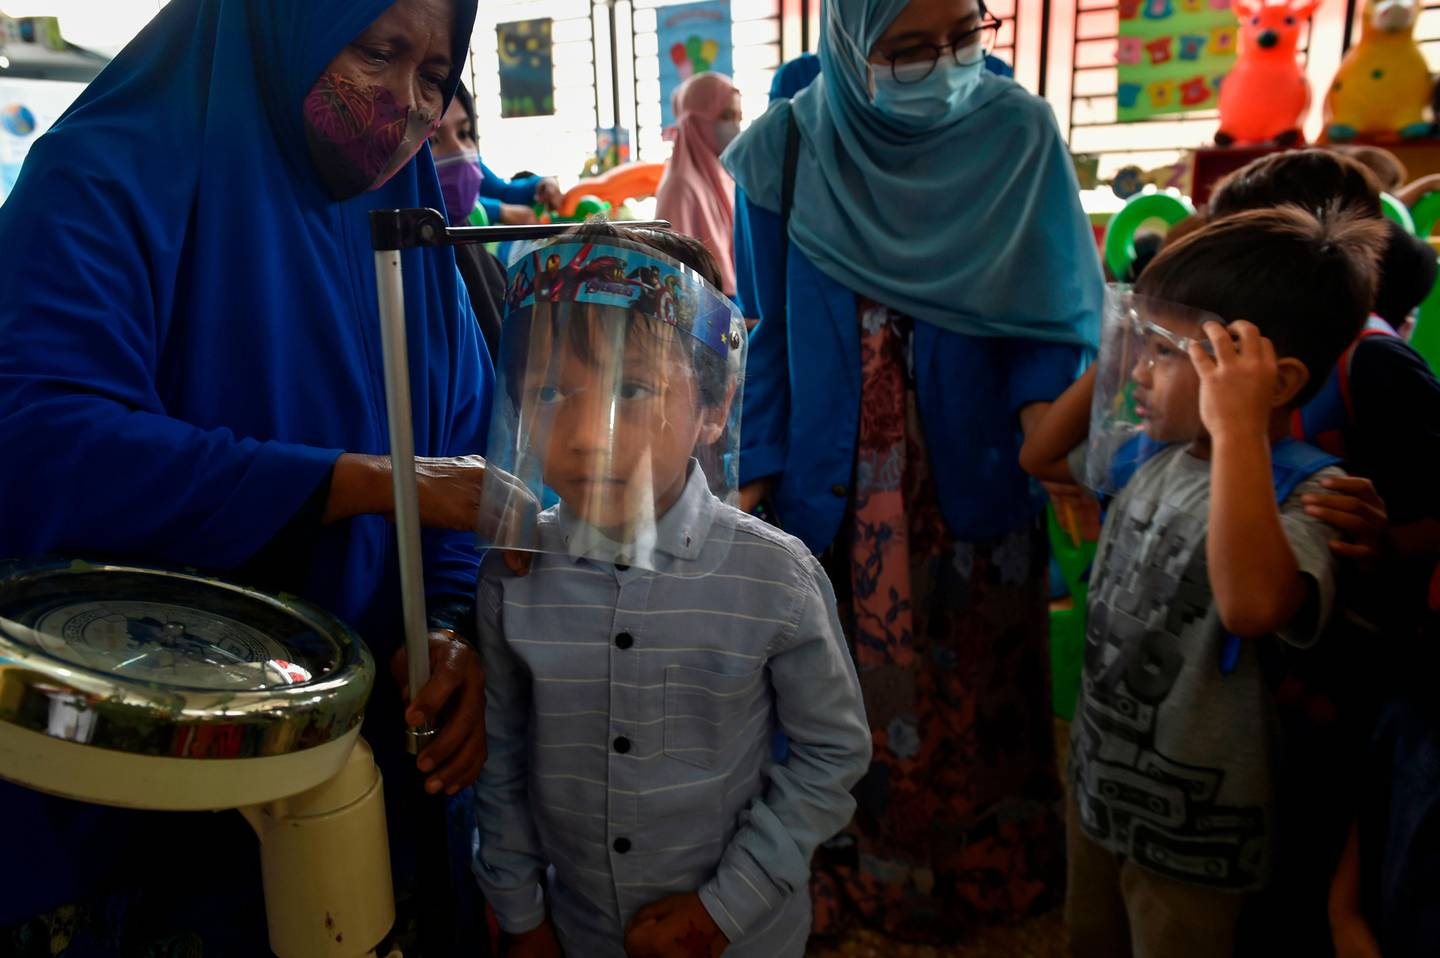 A child's measurements are taken before receiving the measles and polio vaccines at a service post in Banda Aceh on November 4, 2020. (Photo by CHAIDEER MAHYUDDIN / AFP)